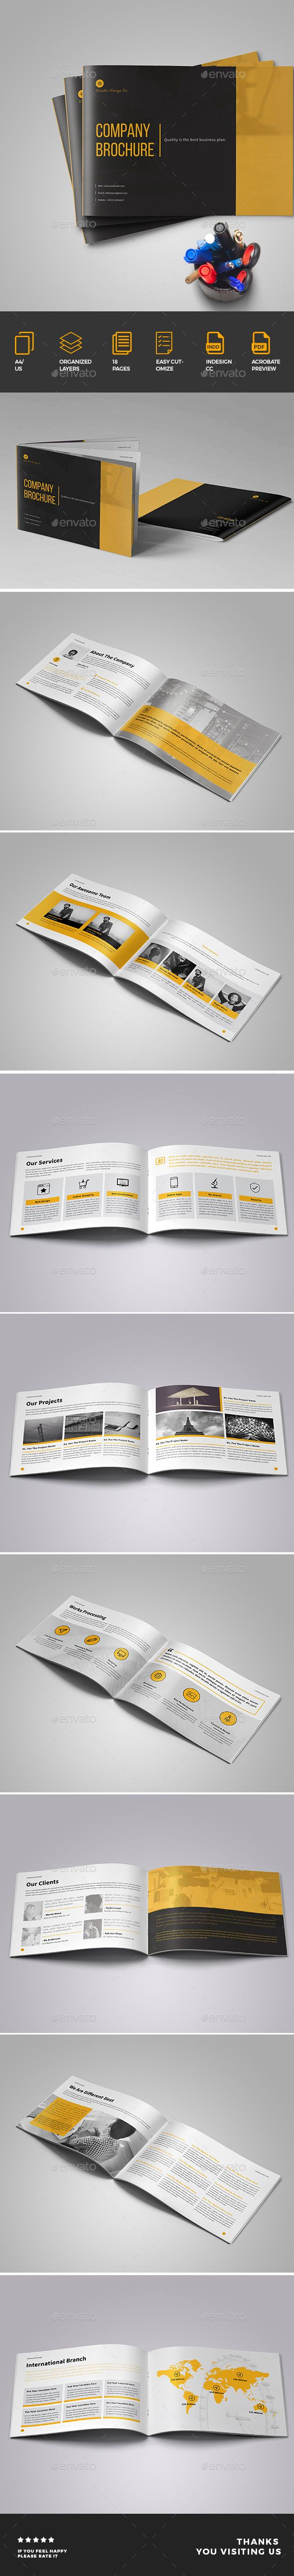 Brochure 18 page company profile brochure design ready to use for corporate profile, company profile, financial profile brochure, corporate brochure, multipurpose company profile brochure catalog template etc. The item is available in A4 size Landscape . You will get well documented and layered indesign files which are very easy to edit and modify as per your business needs.